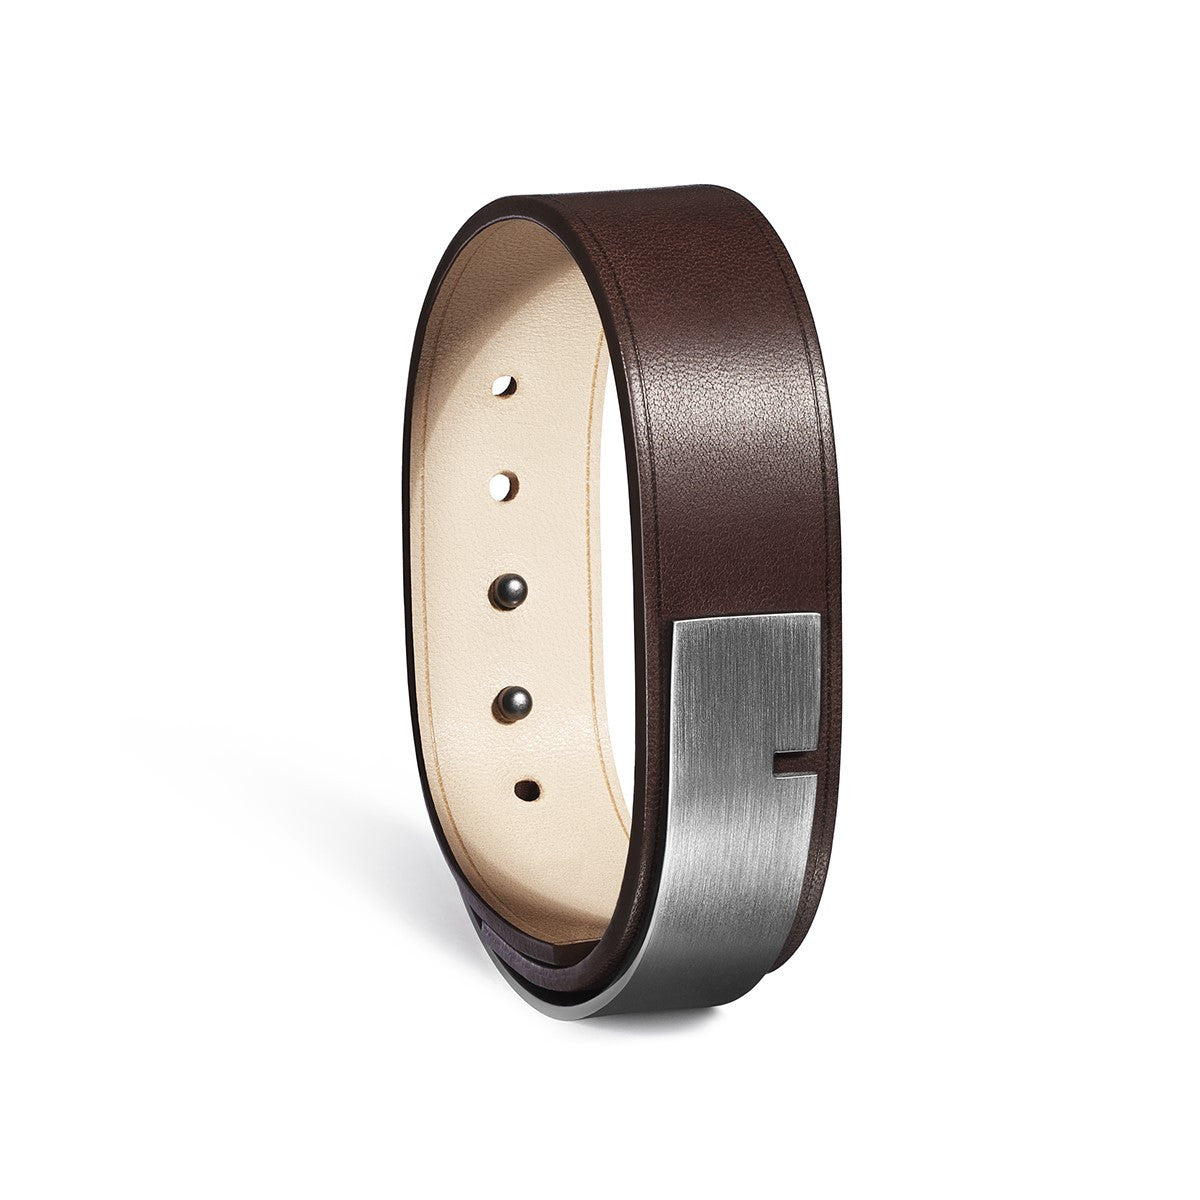 U-Turn 19 - Chocolate Leather Bracelet and Steel Gun clasp